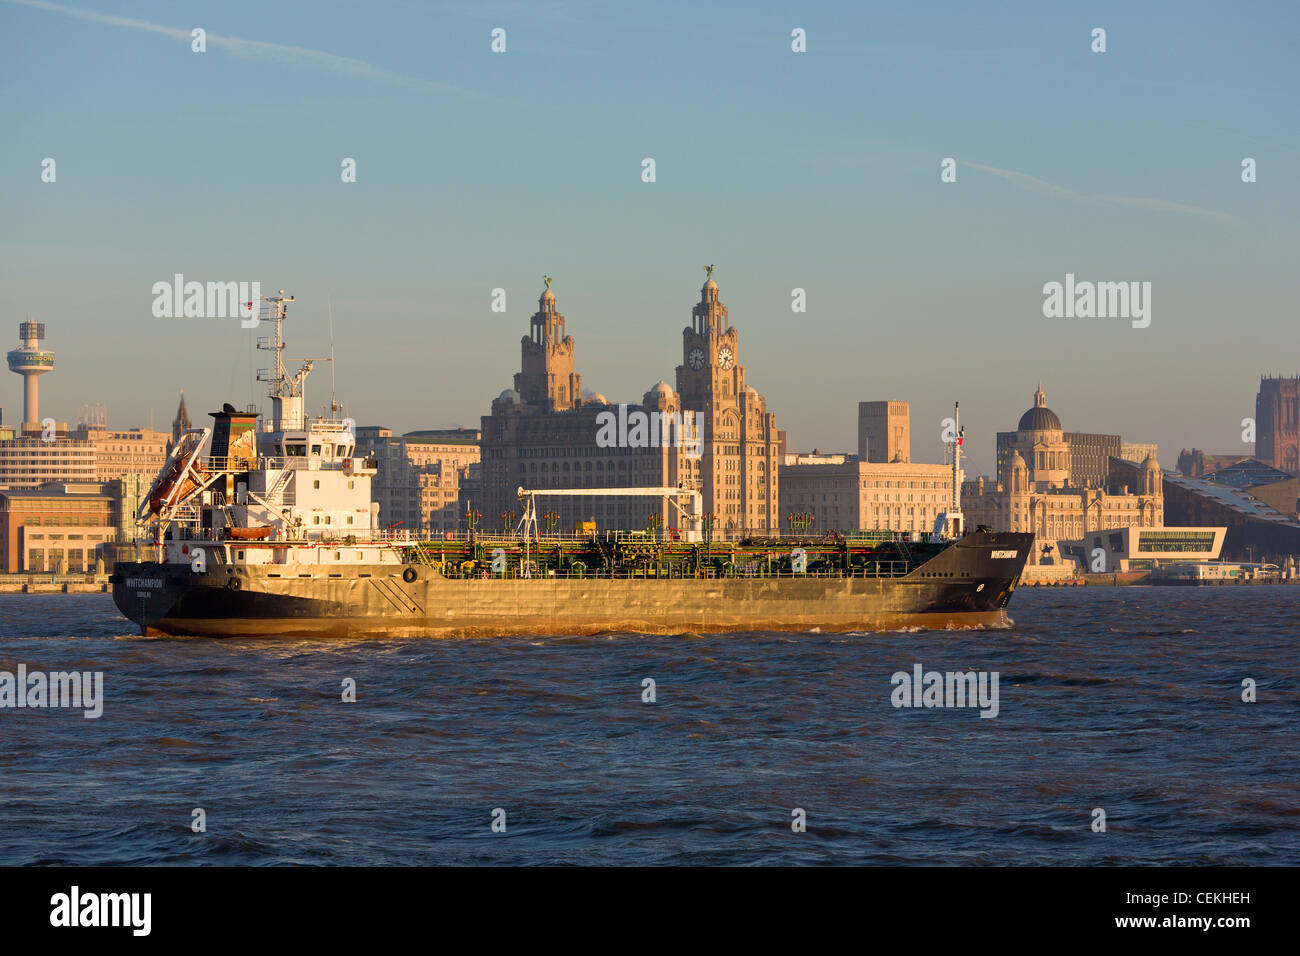 Liverpool shipping - Stock Image